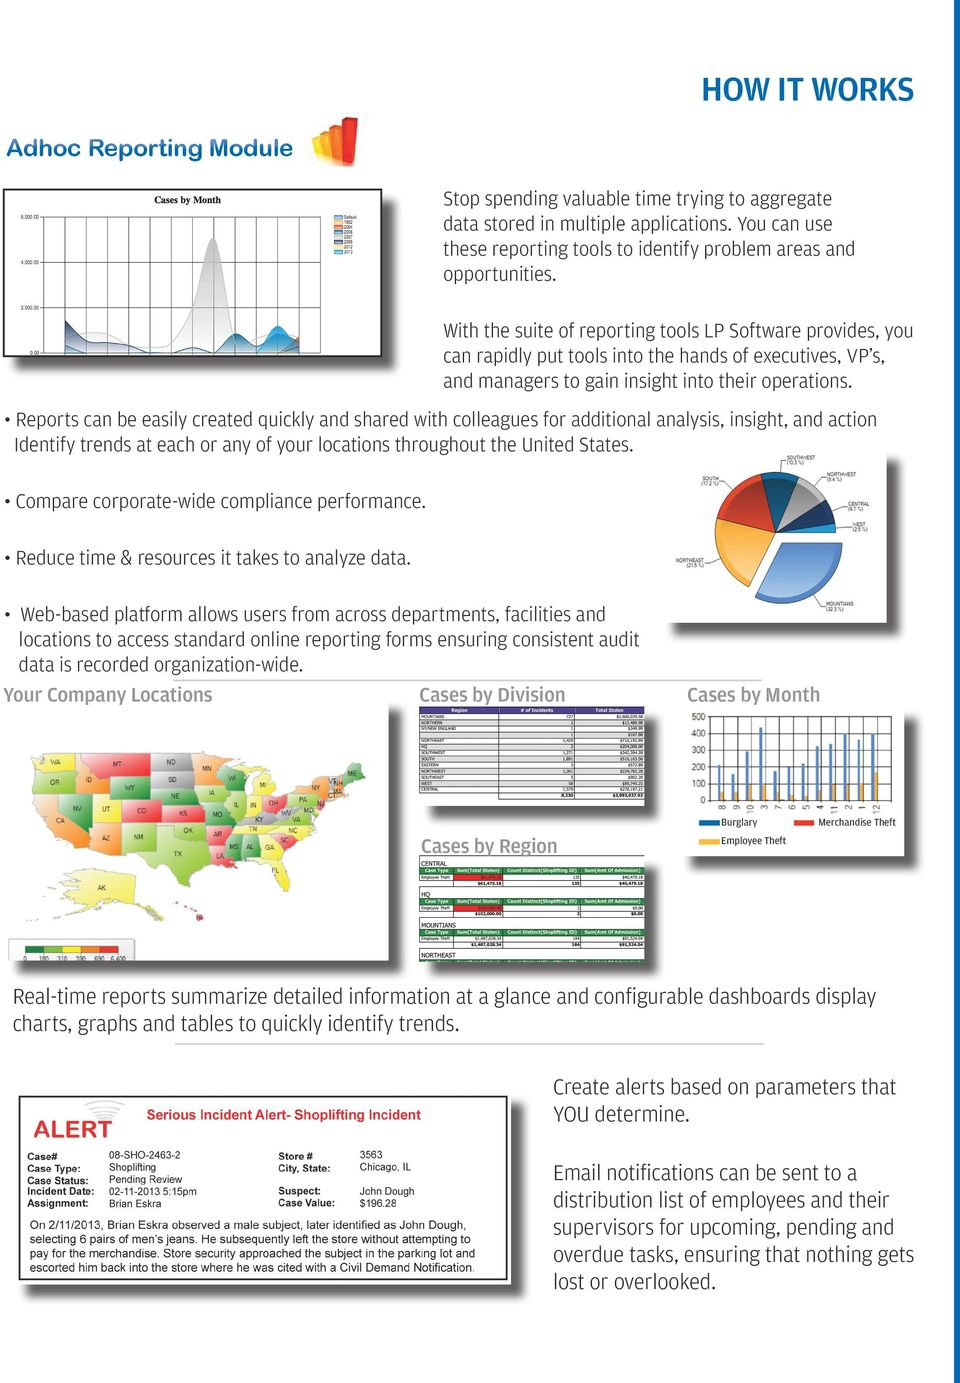 Reports can be easily created quickly and shared with colleagues for additional analysis, insight, and action Identify trends at each or any of your locations throughout the United States.